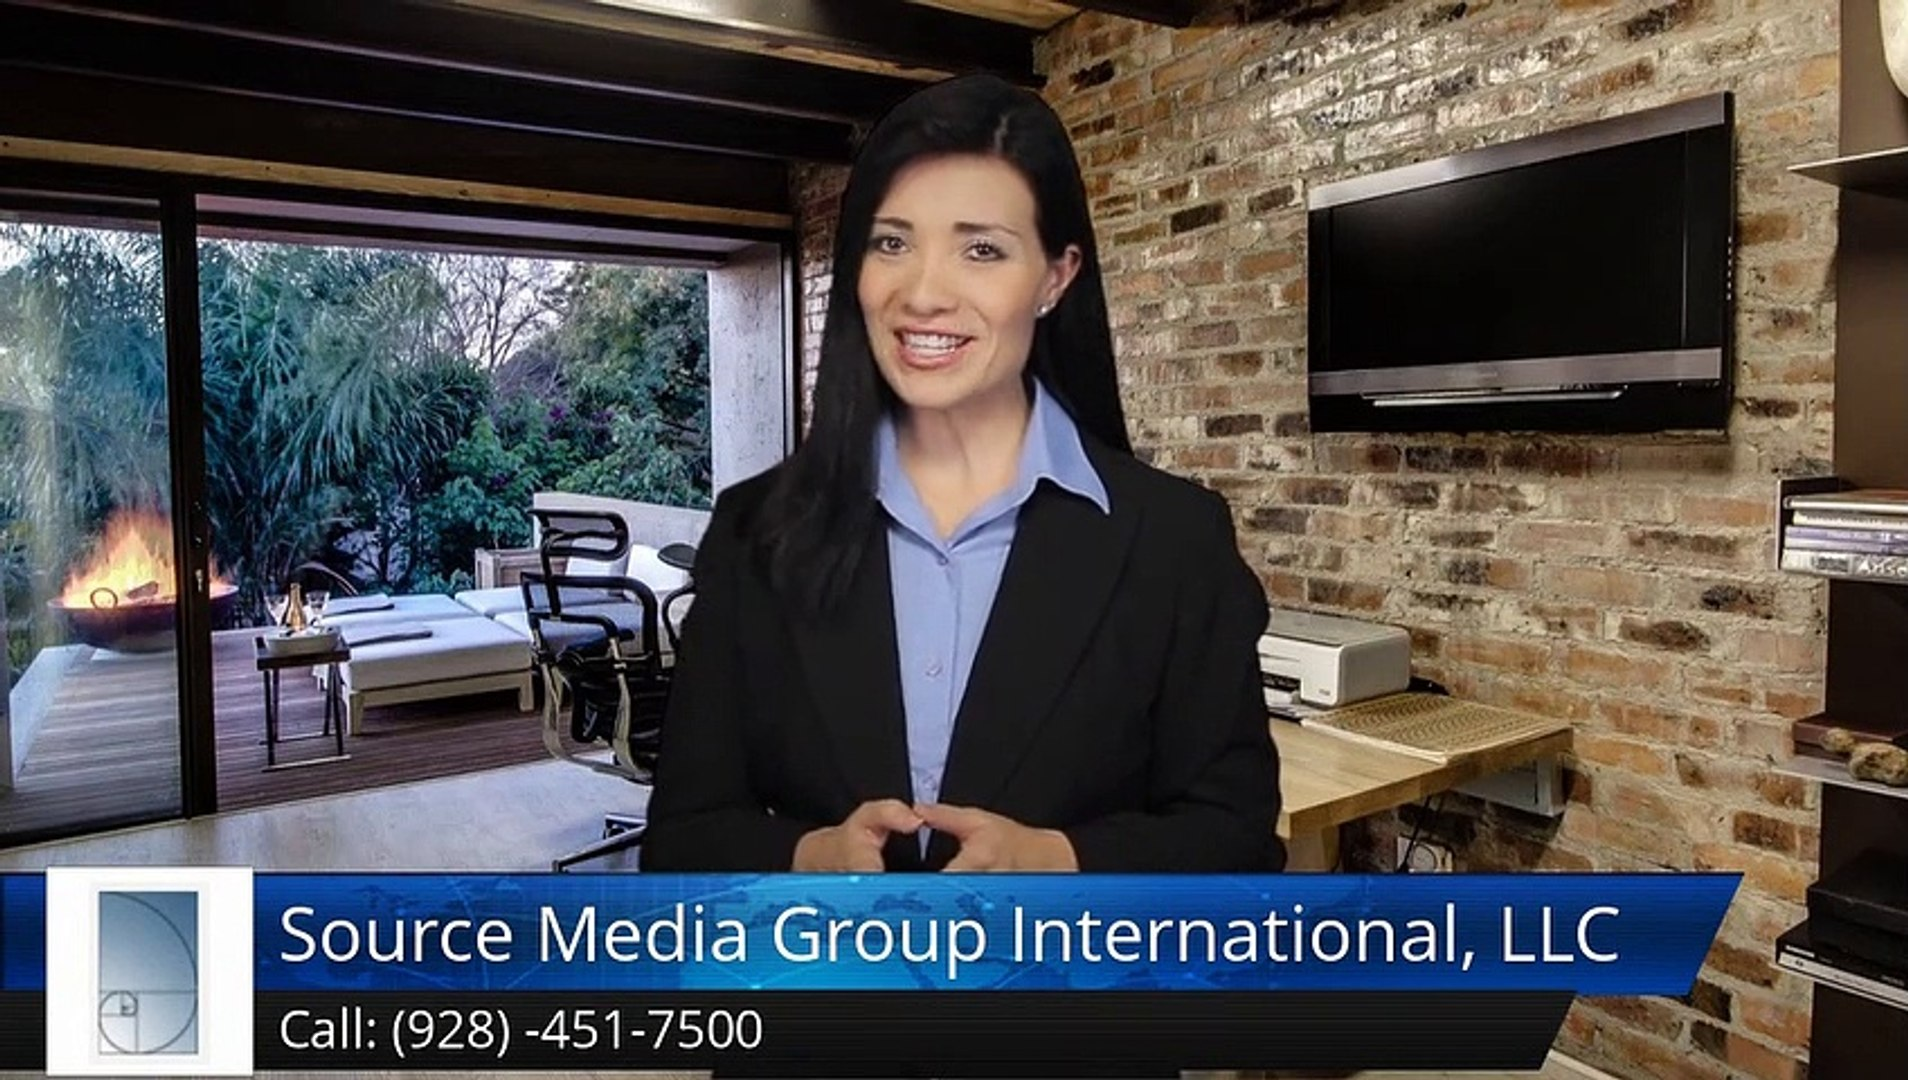 Source Media Group Intl, LLC Sedona Wonderful Five Star Review by Steve Young